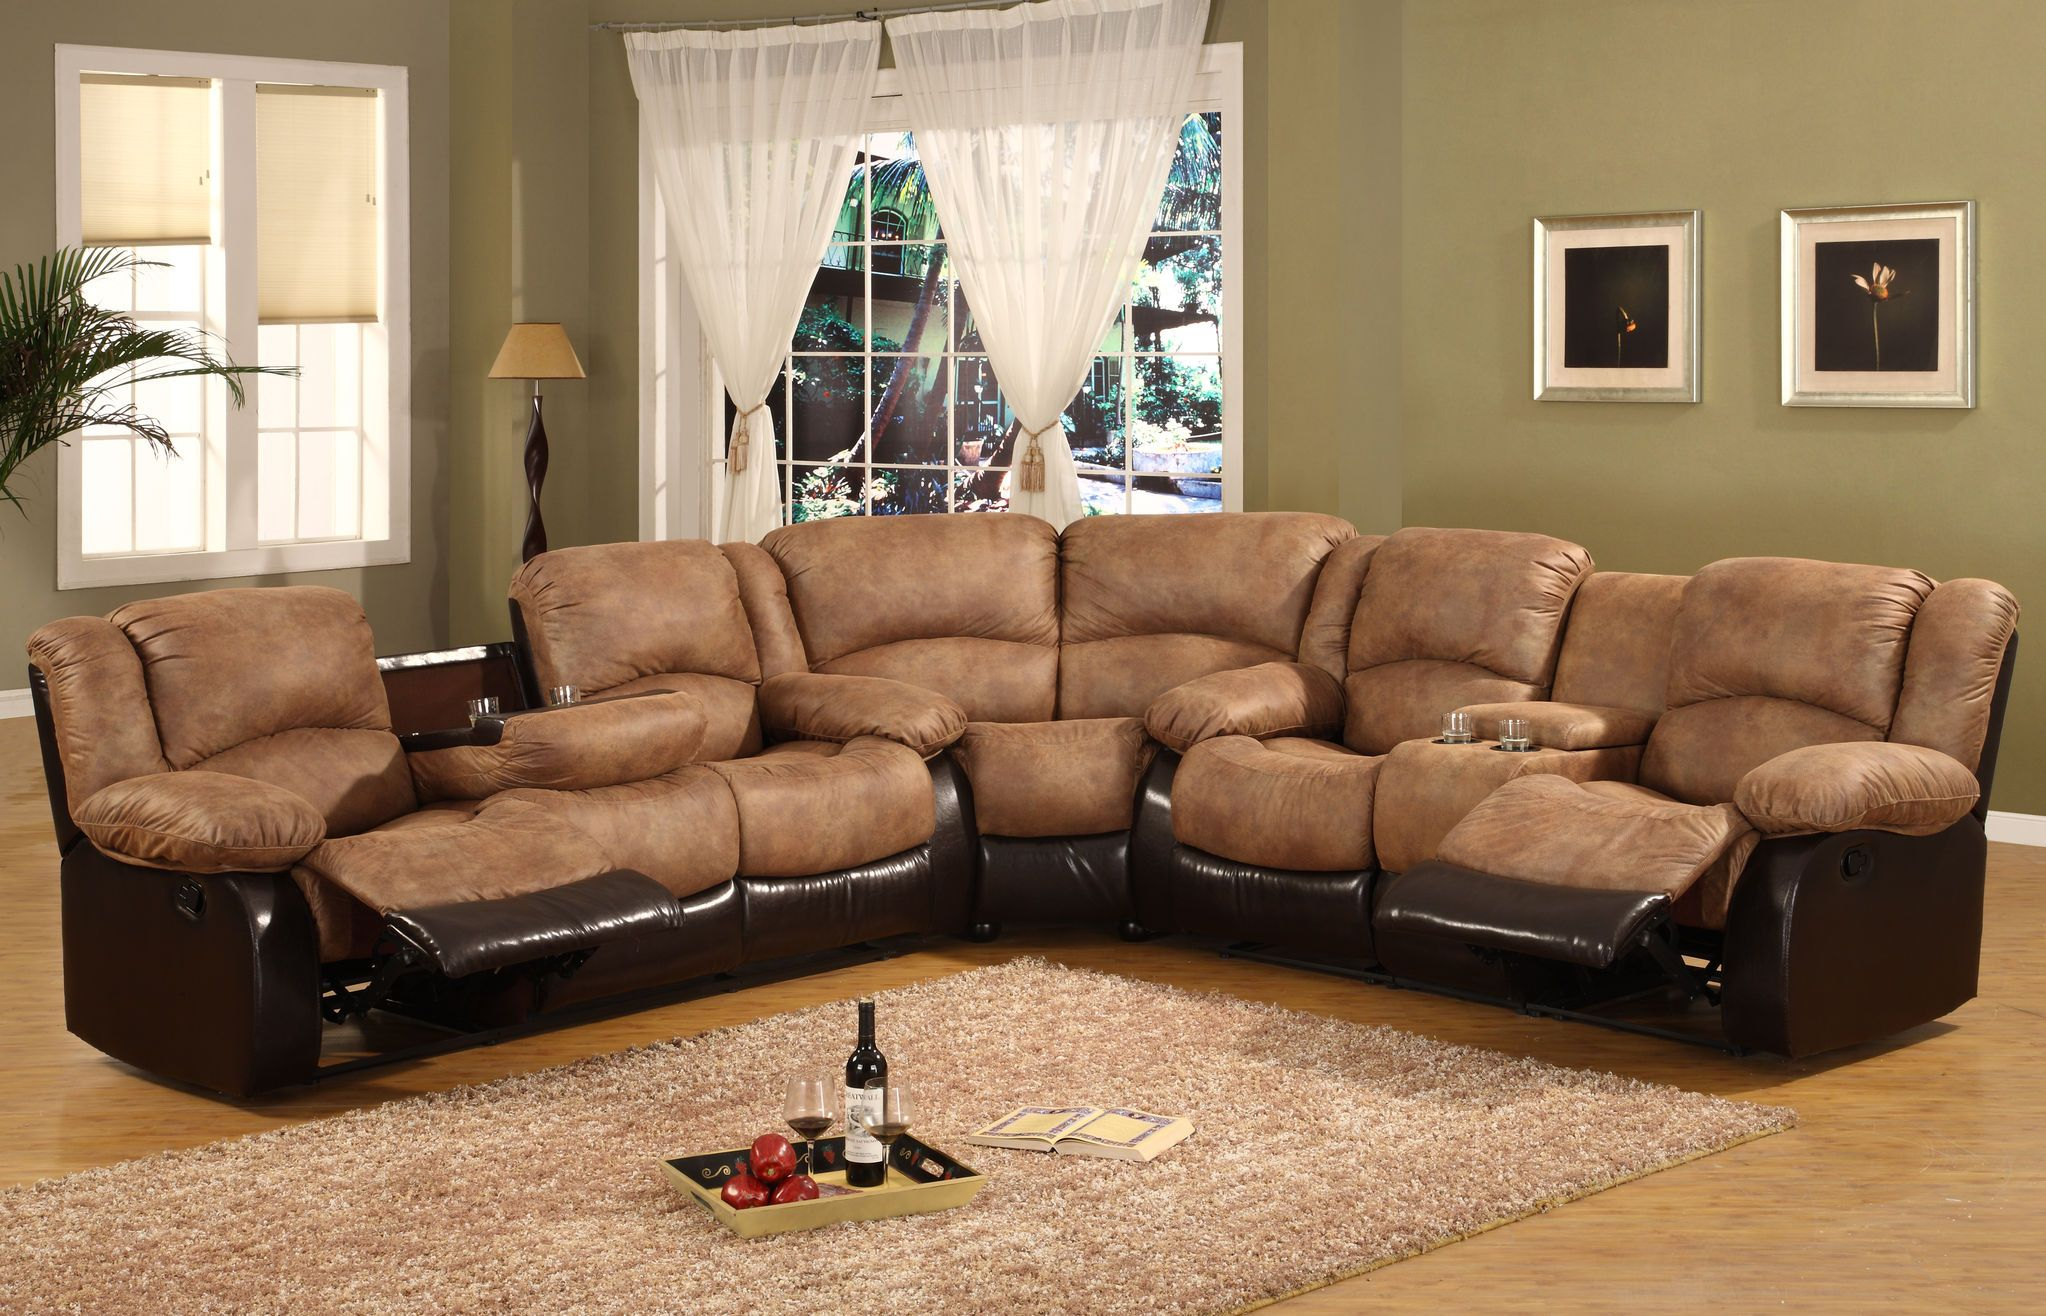 Lazy Boy Sectional Prices Sectional sofa sale Sofa sale and Modern